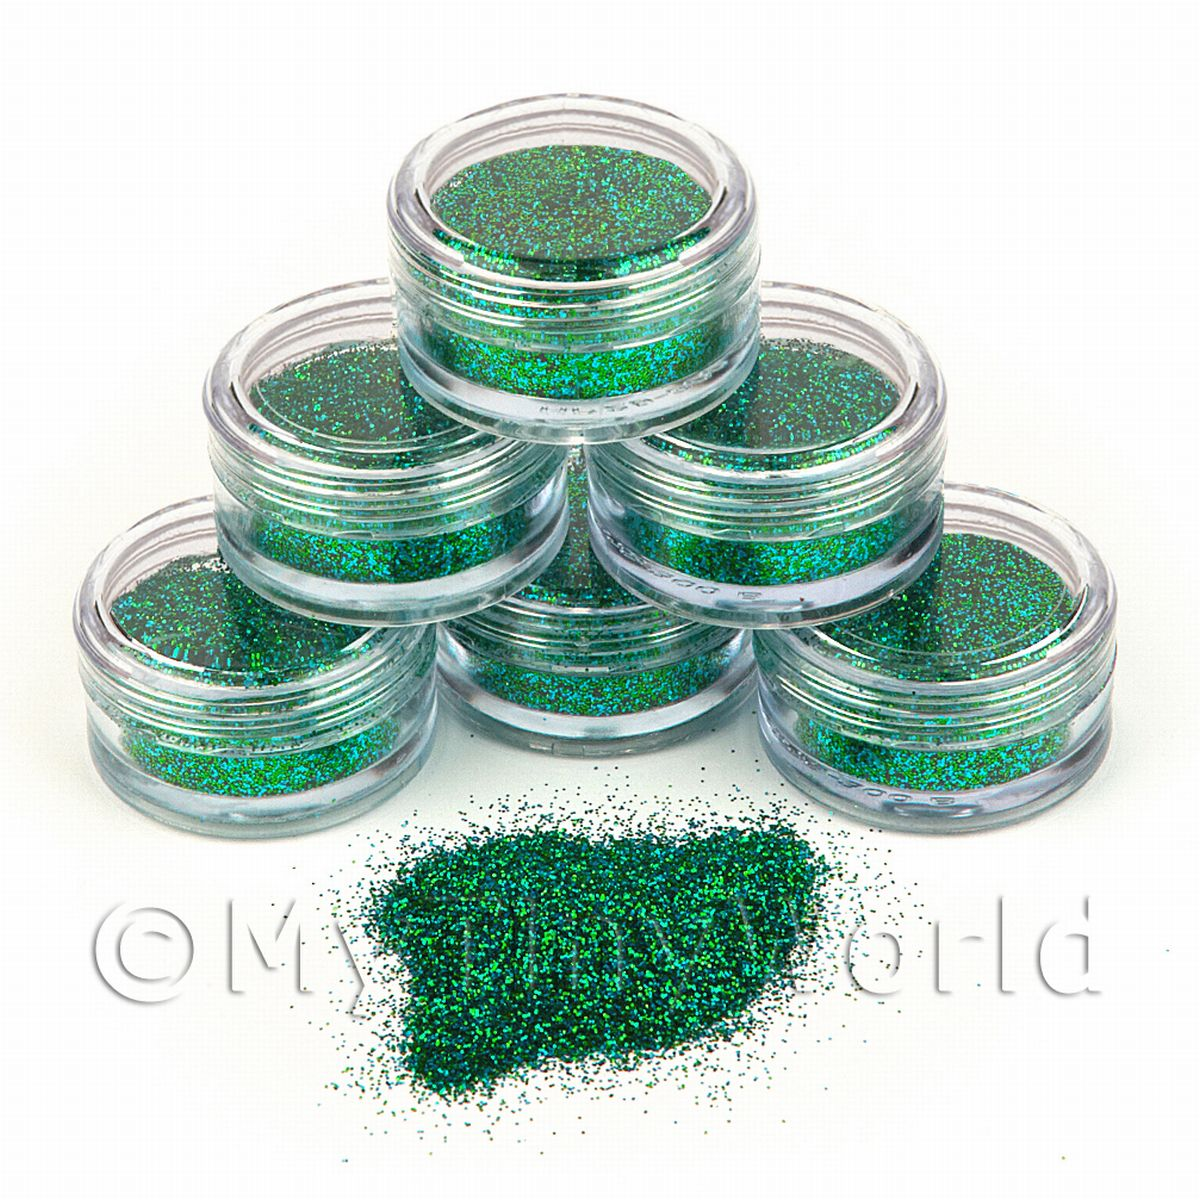 High Quality Nail Art Glitter - 2g Pot - Arabian Nights